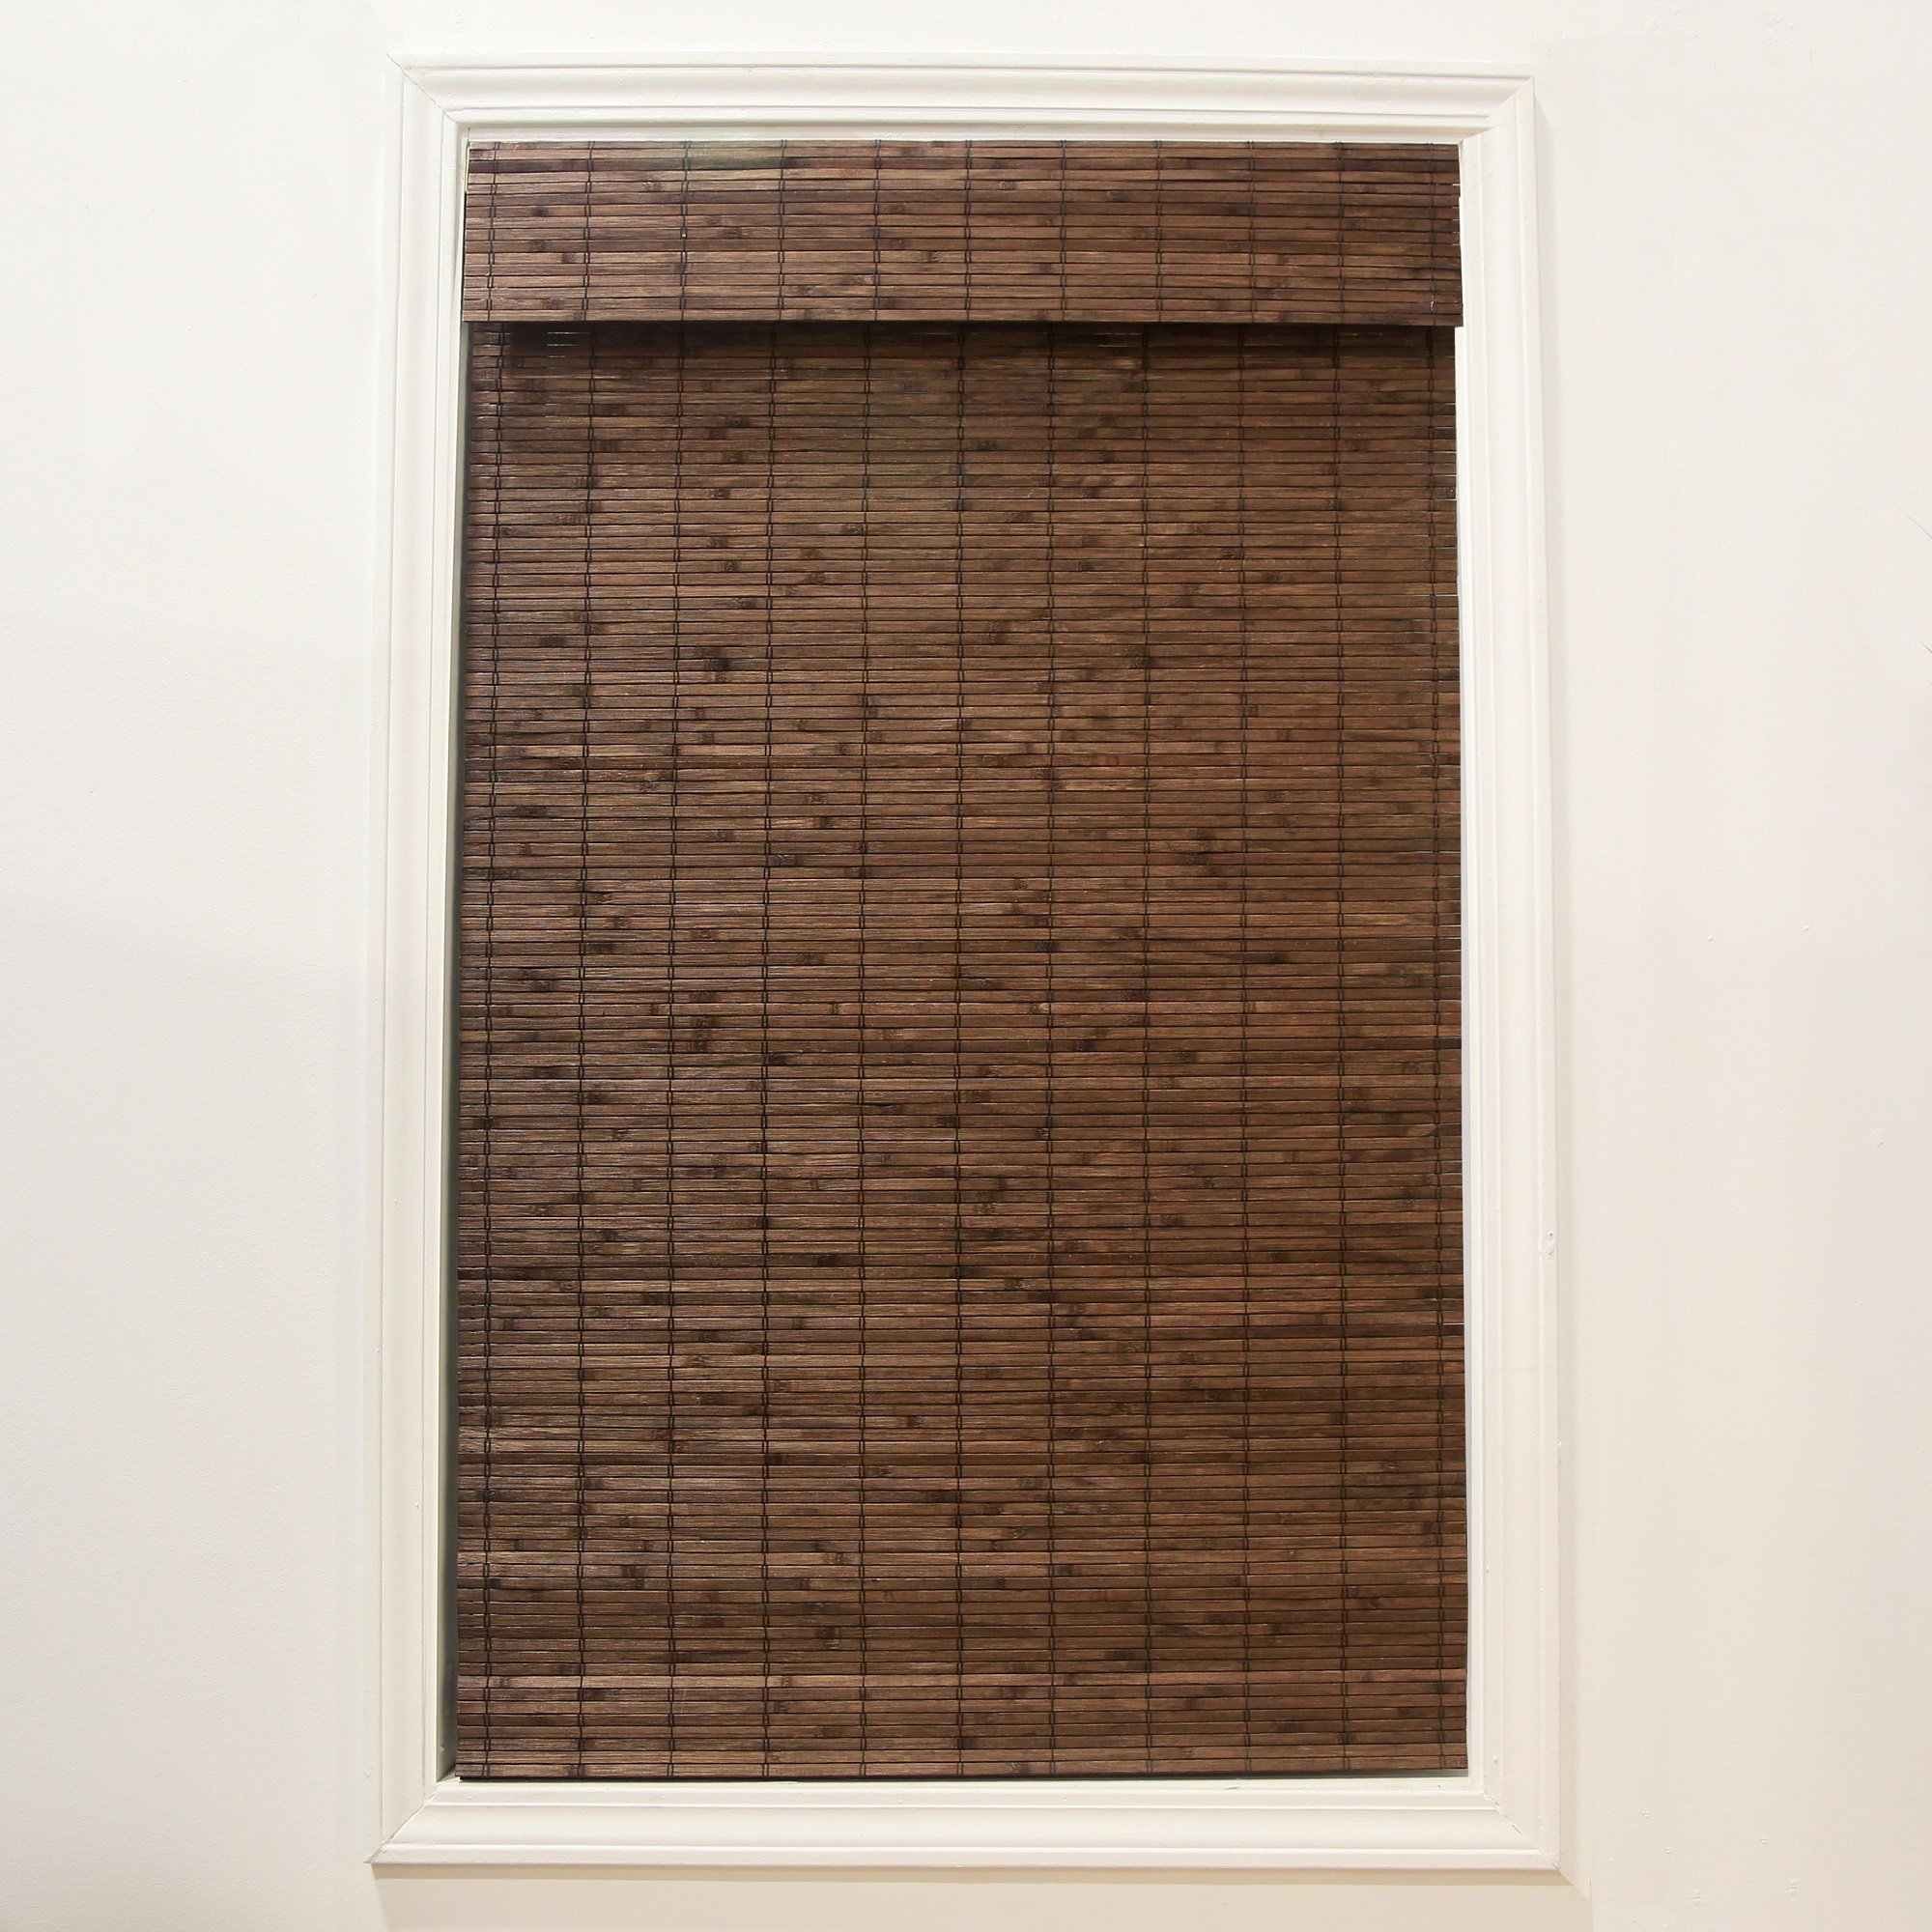 RADIANCE Cordless Dockside Flatstick Bamboo Roman Shade, 39 in. W x 64 in. L, Cocoa by RADIANCE